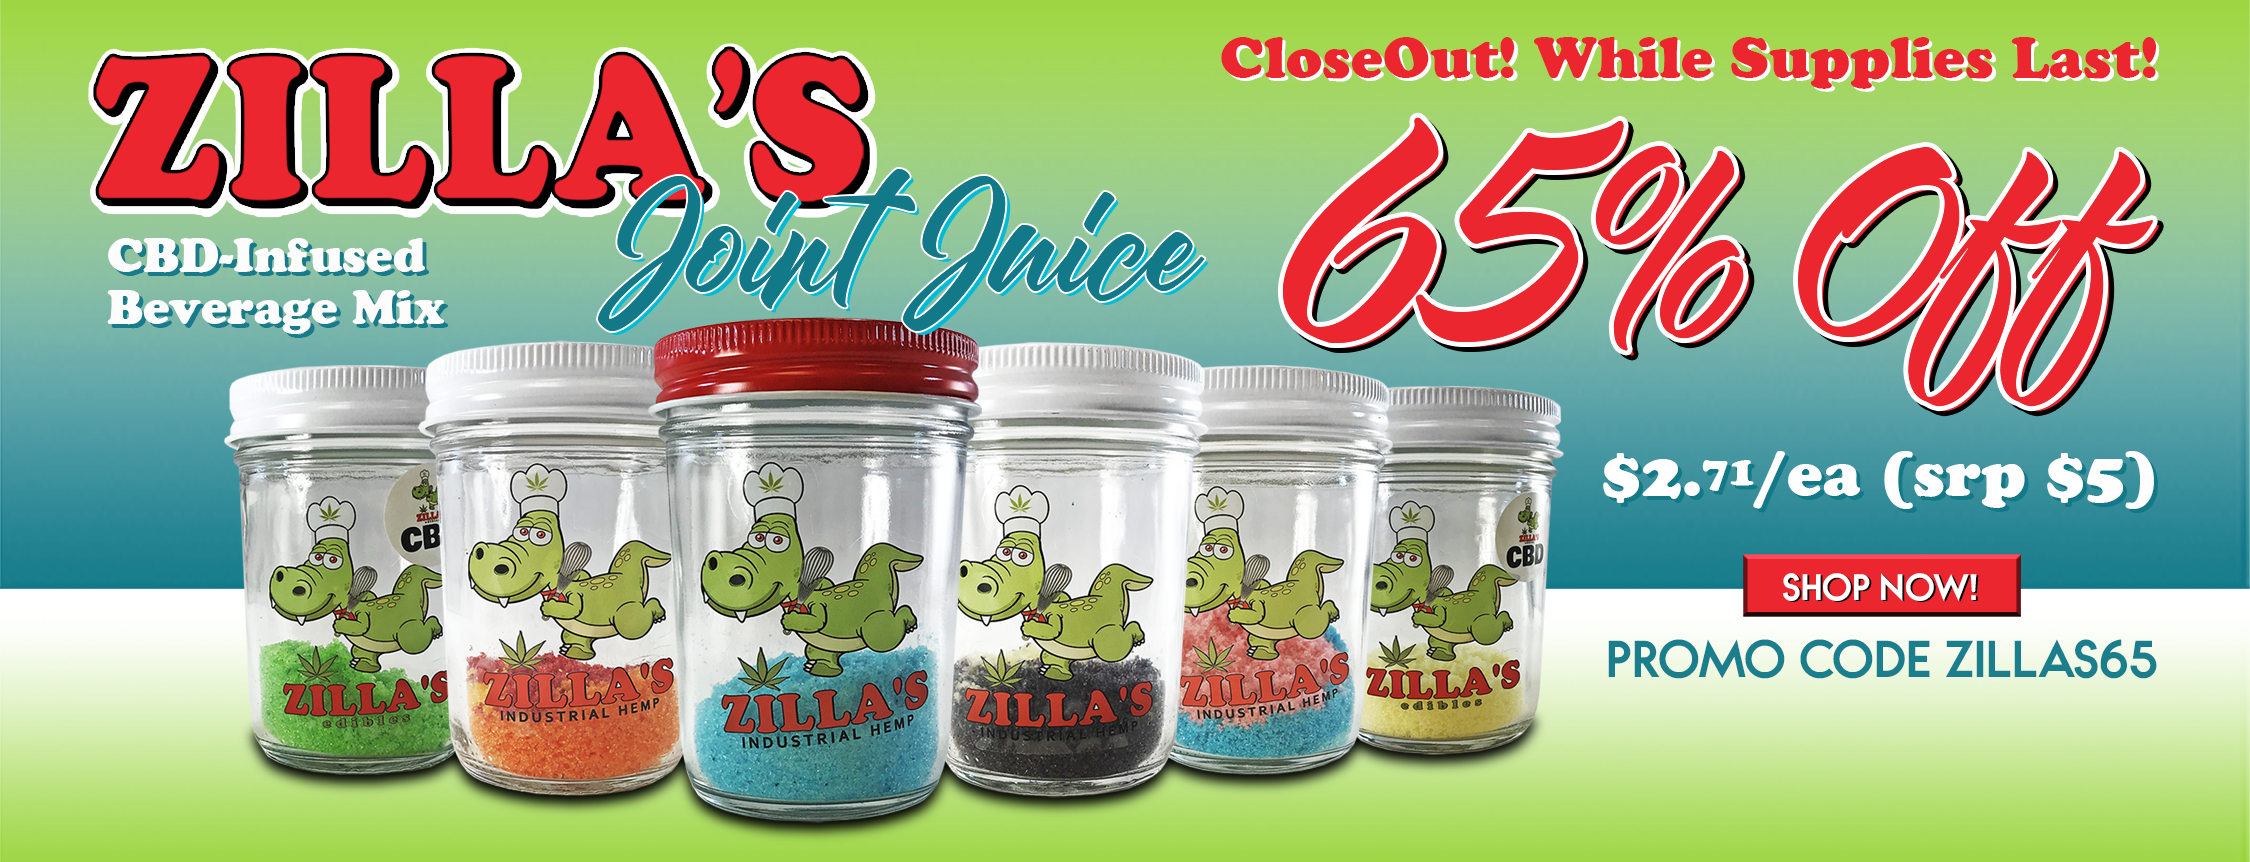 Zilla's Joint Juice 65% Off